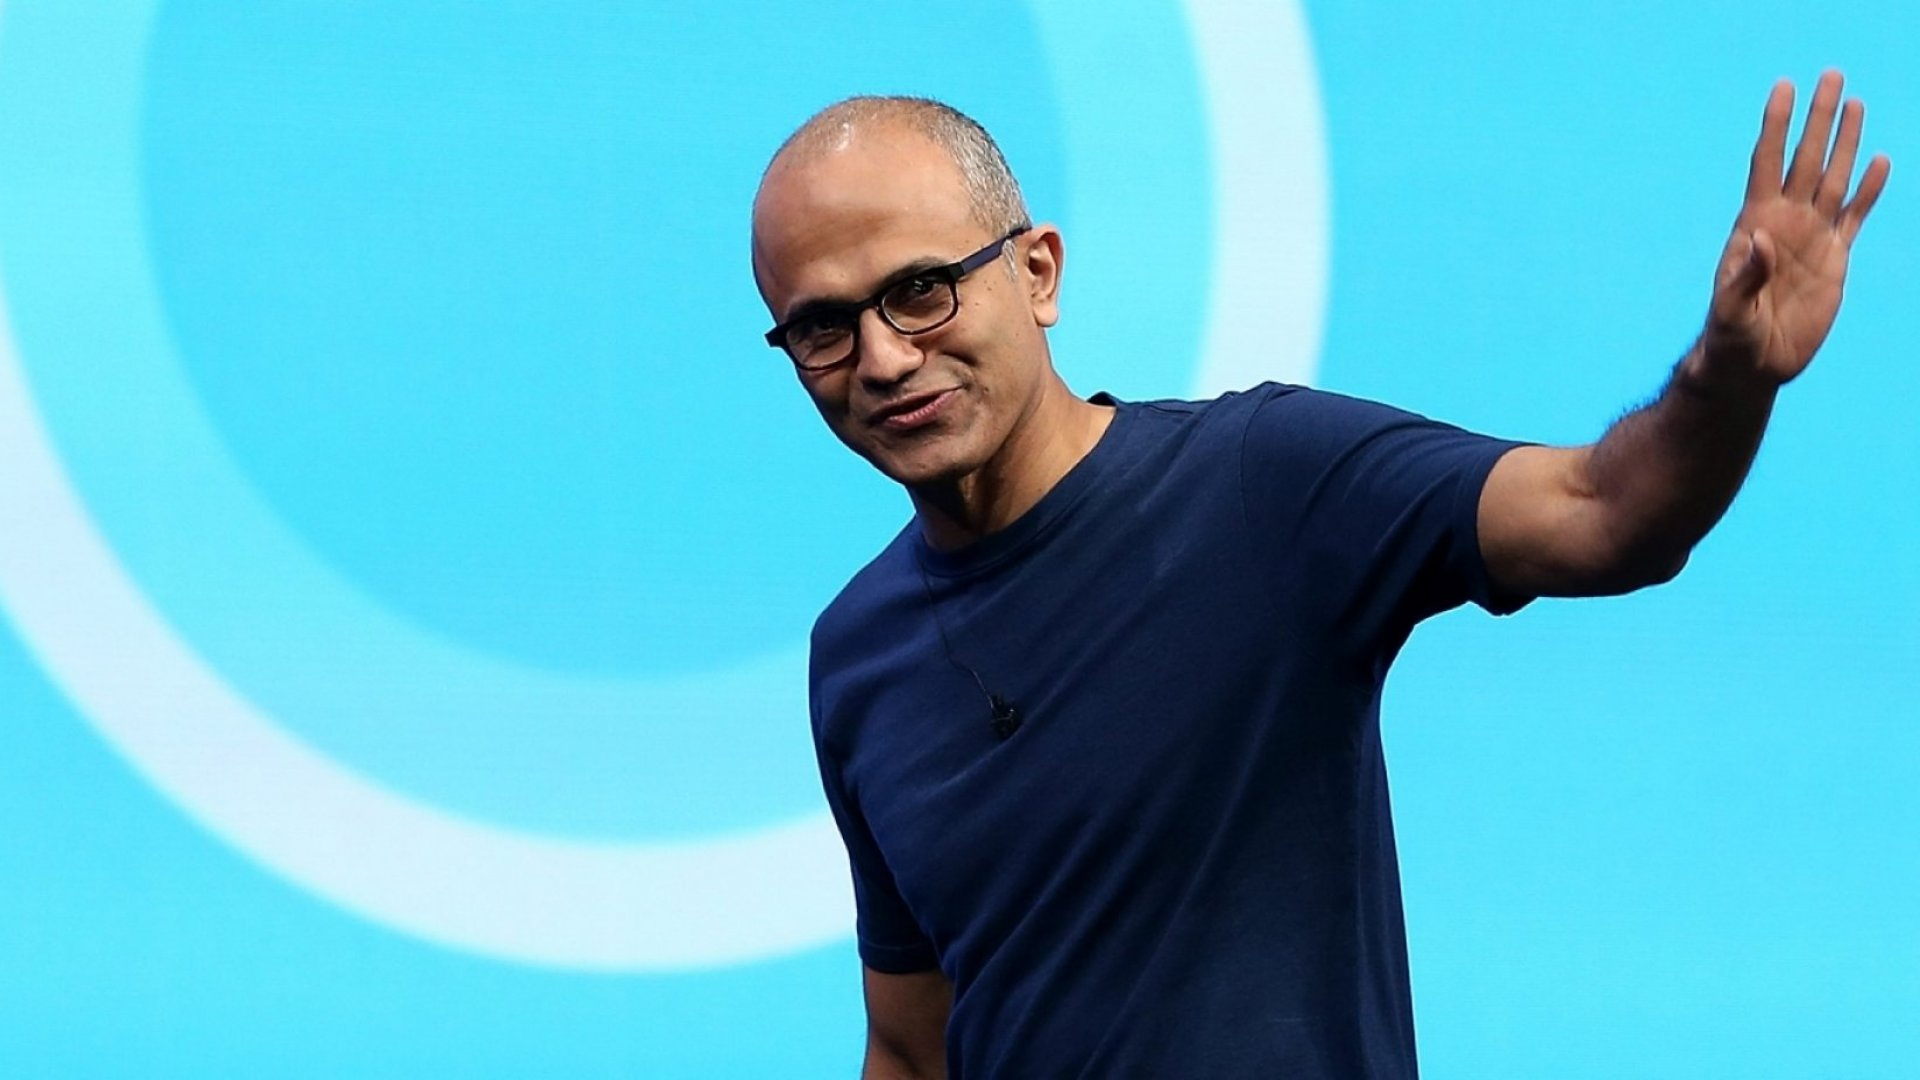 Microsoft's CEO Just Gave Some Brilliant Career Advice. Here It Is in 1 Sentence